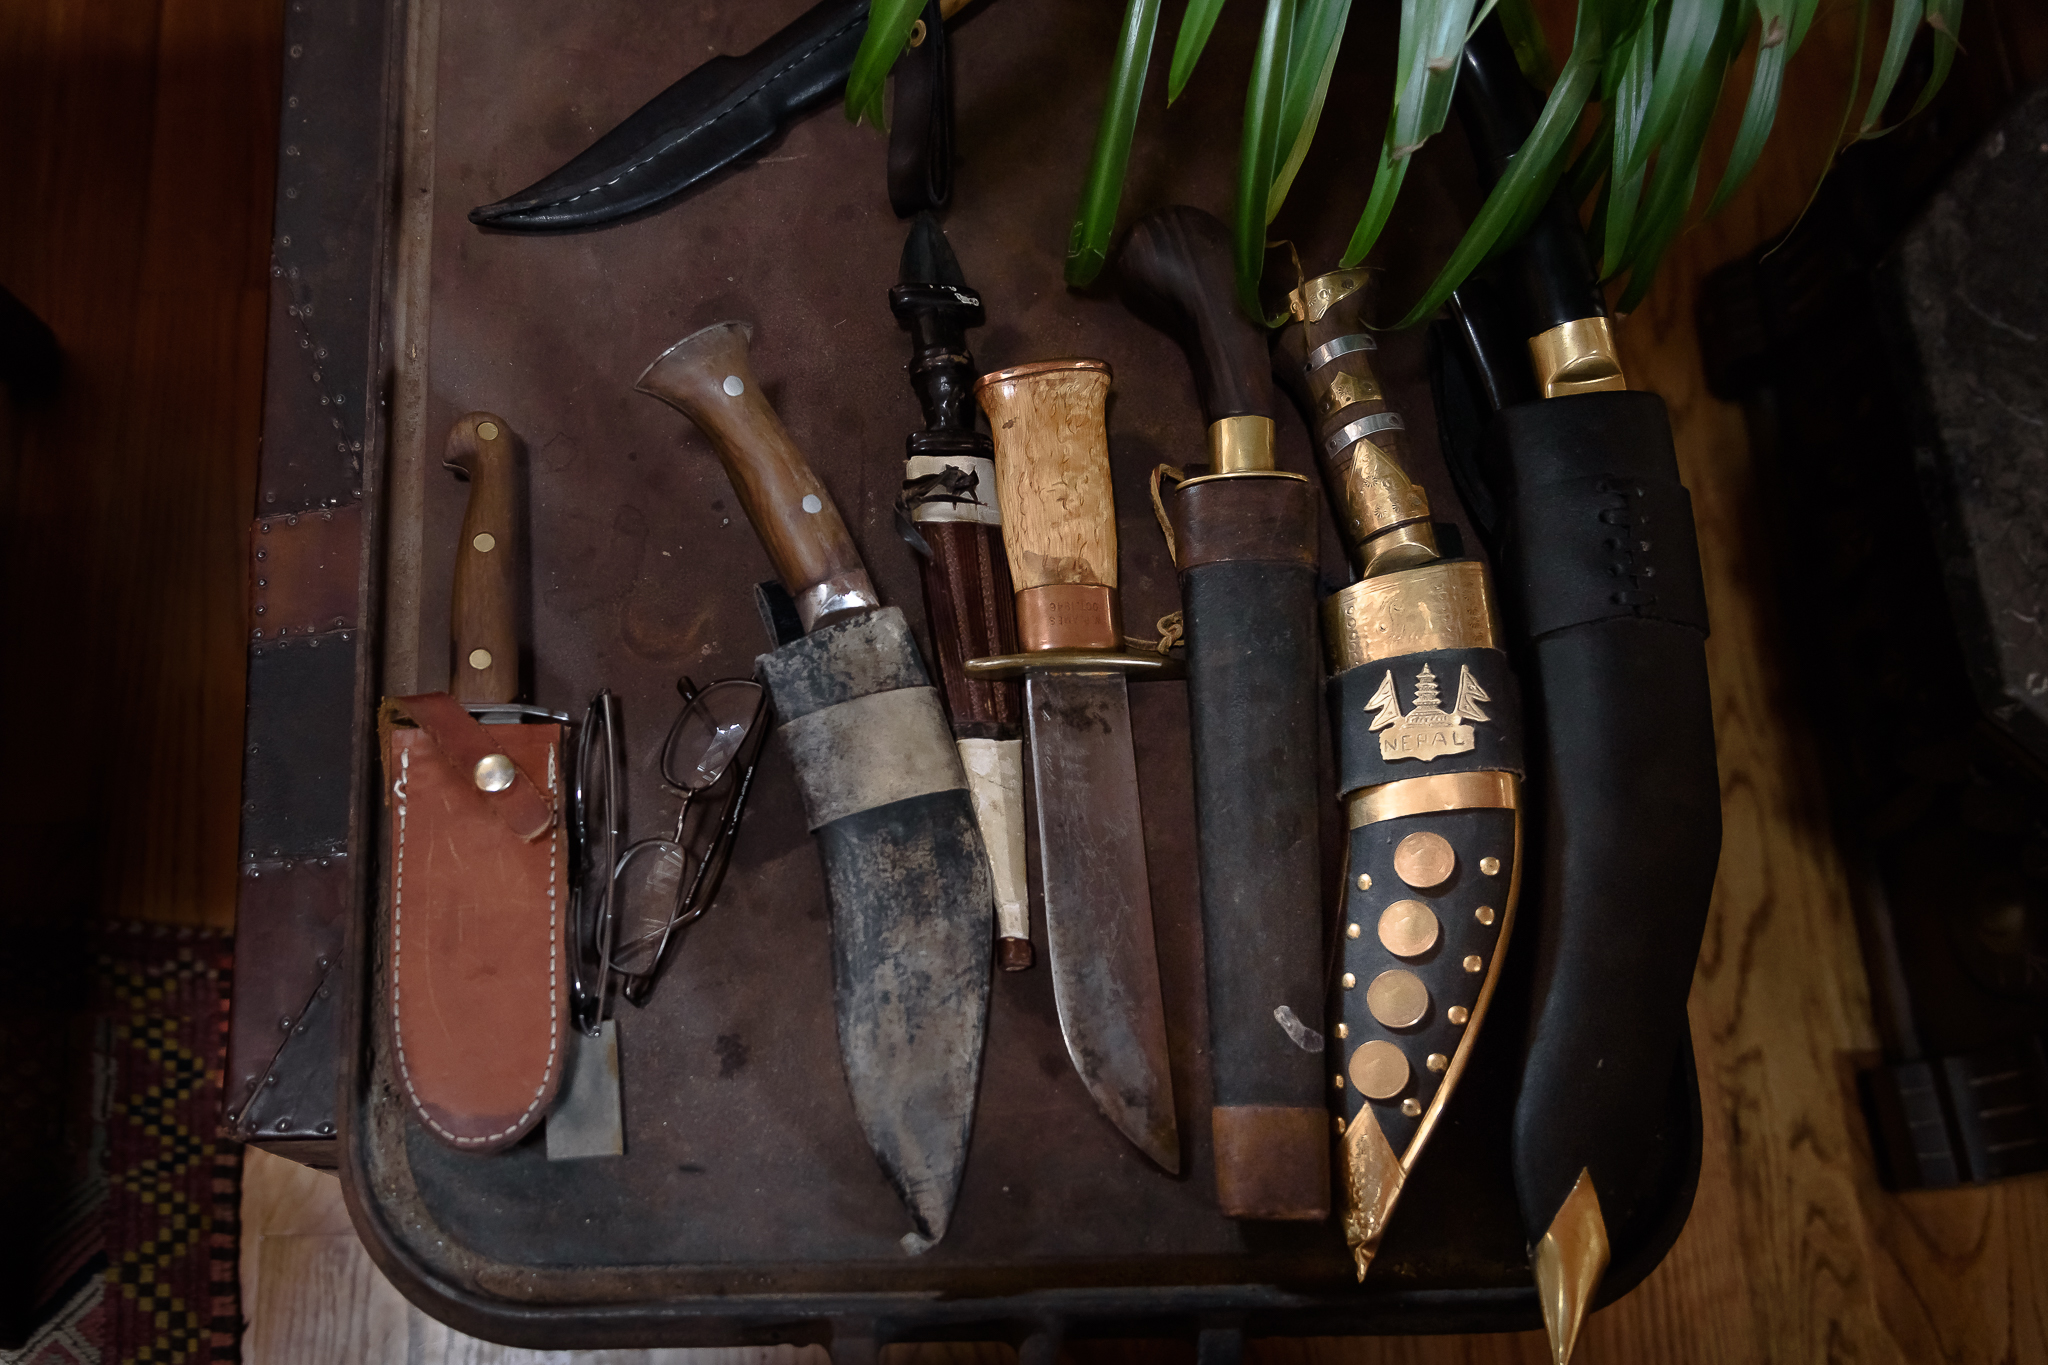 A peek at a few of the many knives in John's collection.